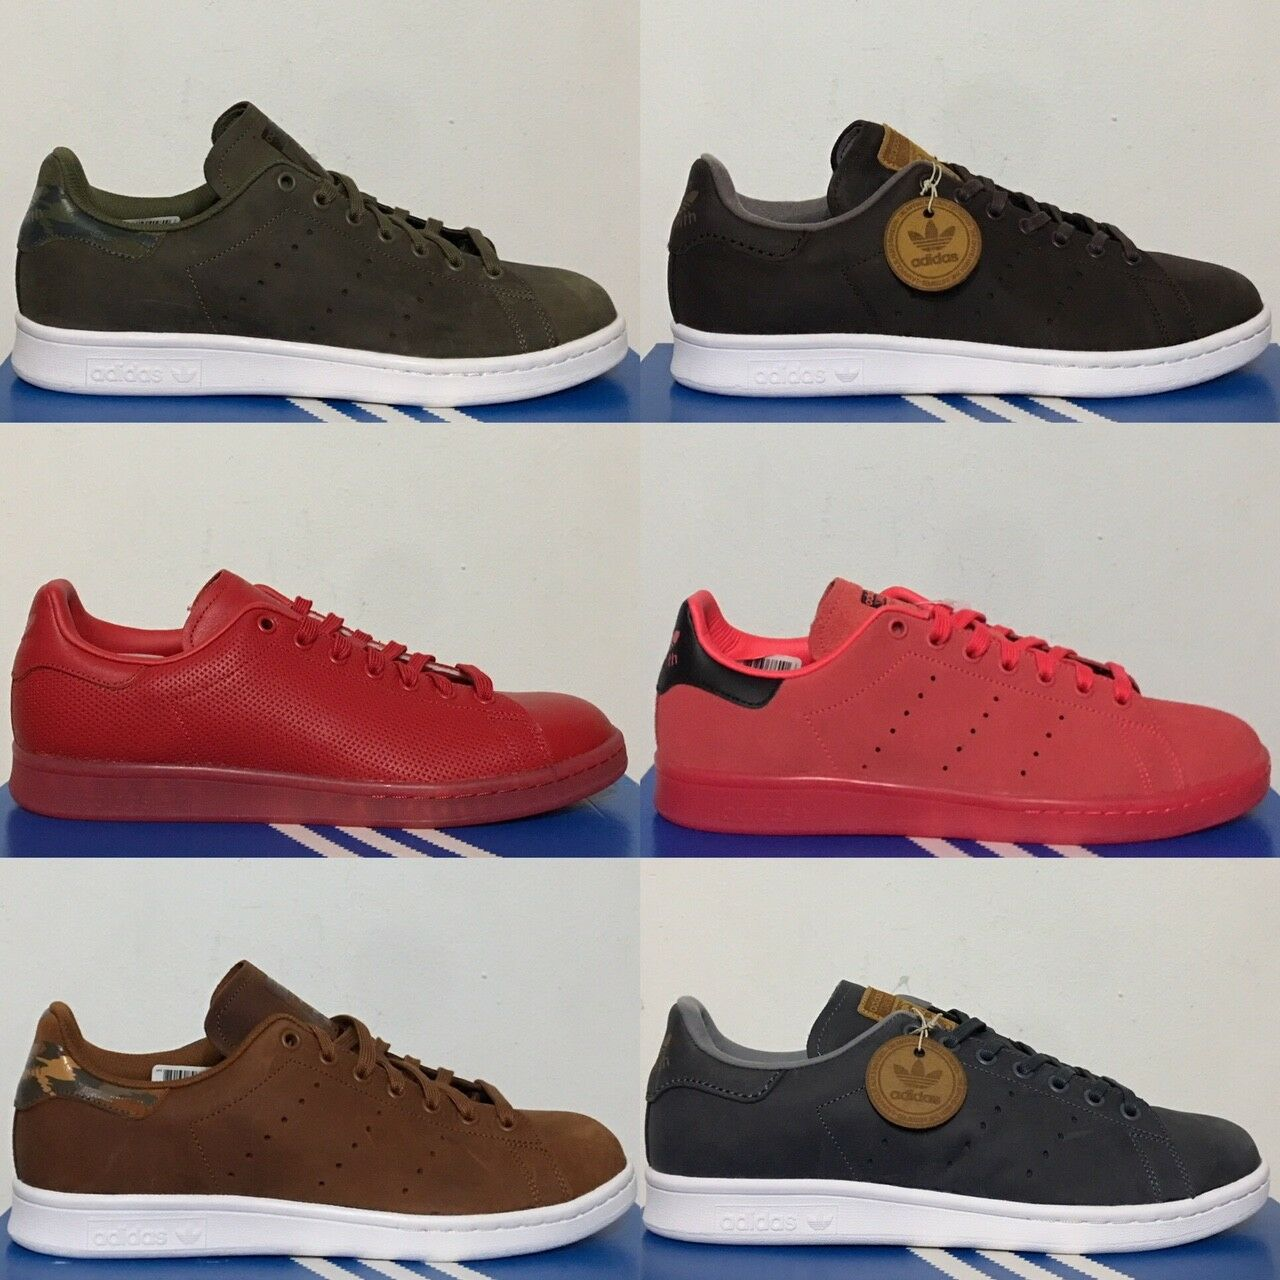 Adidas Originals Stan Smith Retro Casual Shoes